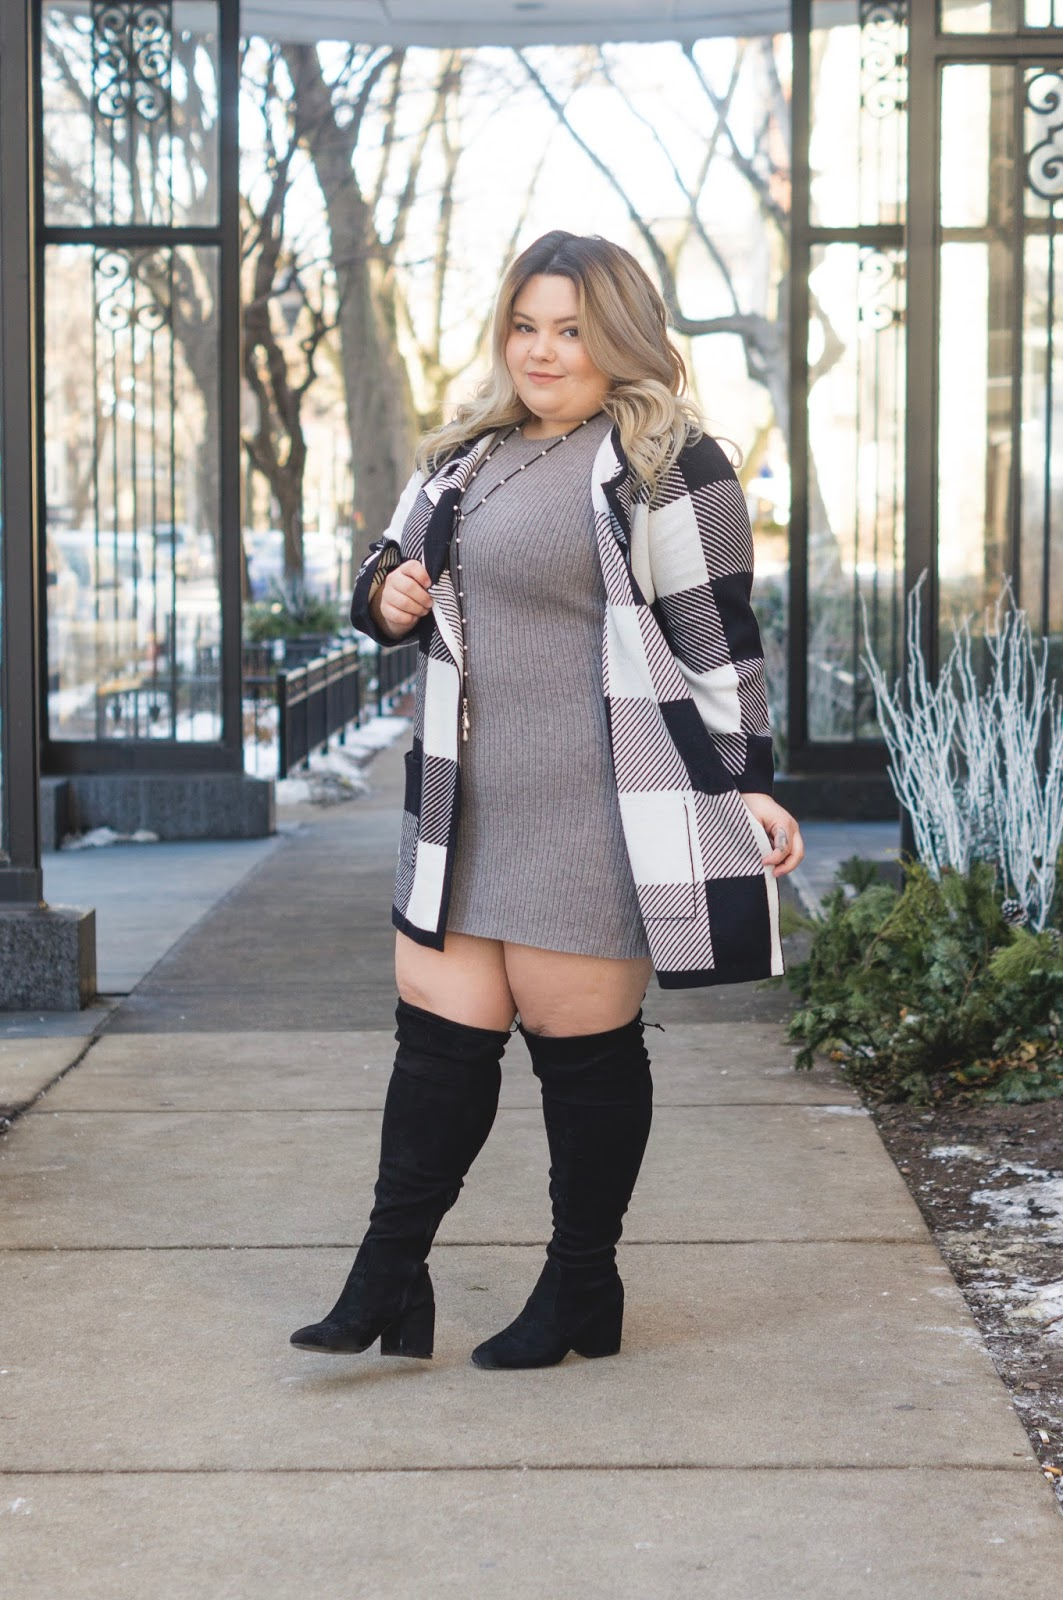 embrace your curves, wide calf over the knee boots, wide calf boots, alfani, macks plus size, affordable plus size clothing, plus size poncho, sweater jacket, Natalie craig, natalie in the city, plus size fashion, Chicago plus size fashion blogger, Chicago model, midwest blogger, eff your beauty standards